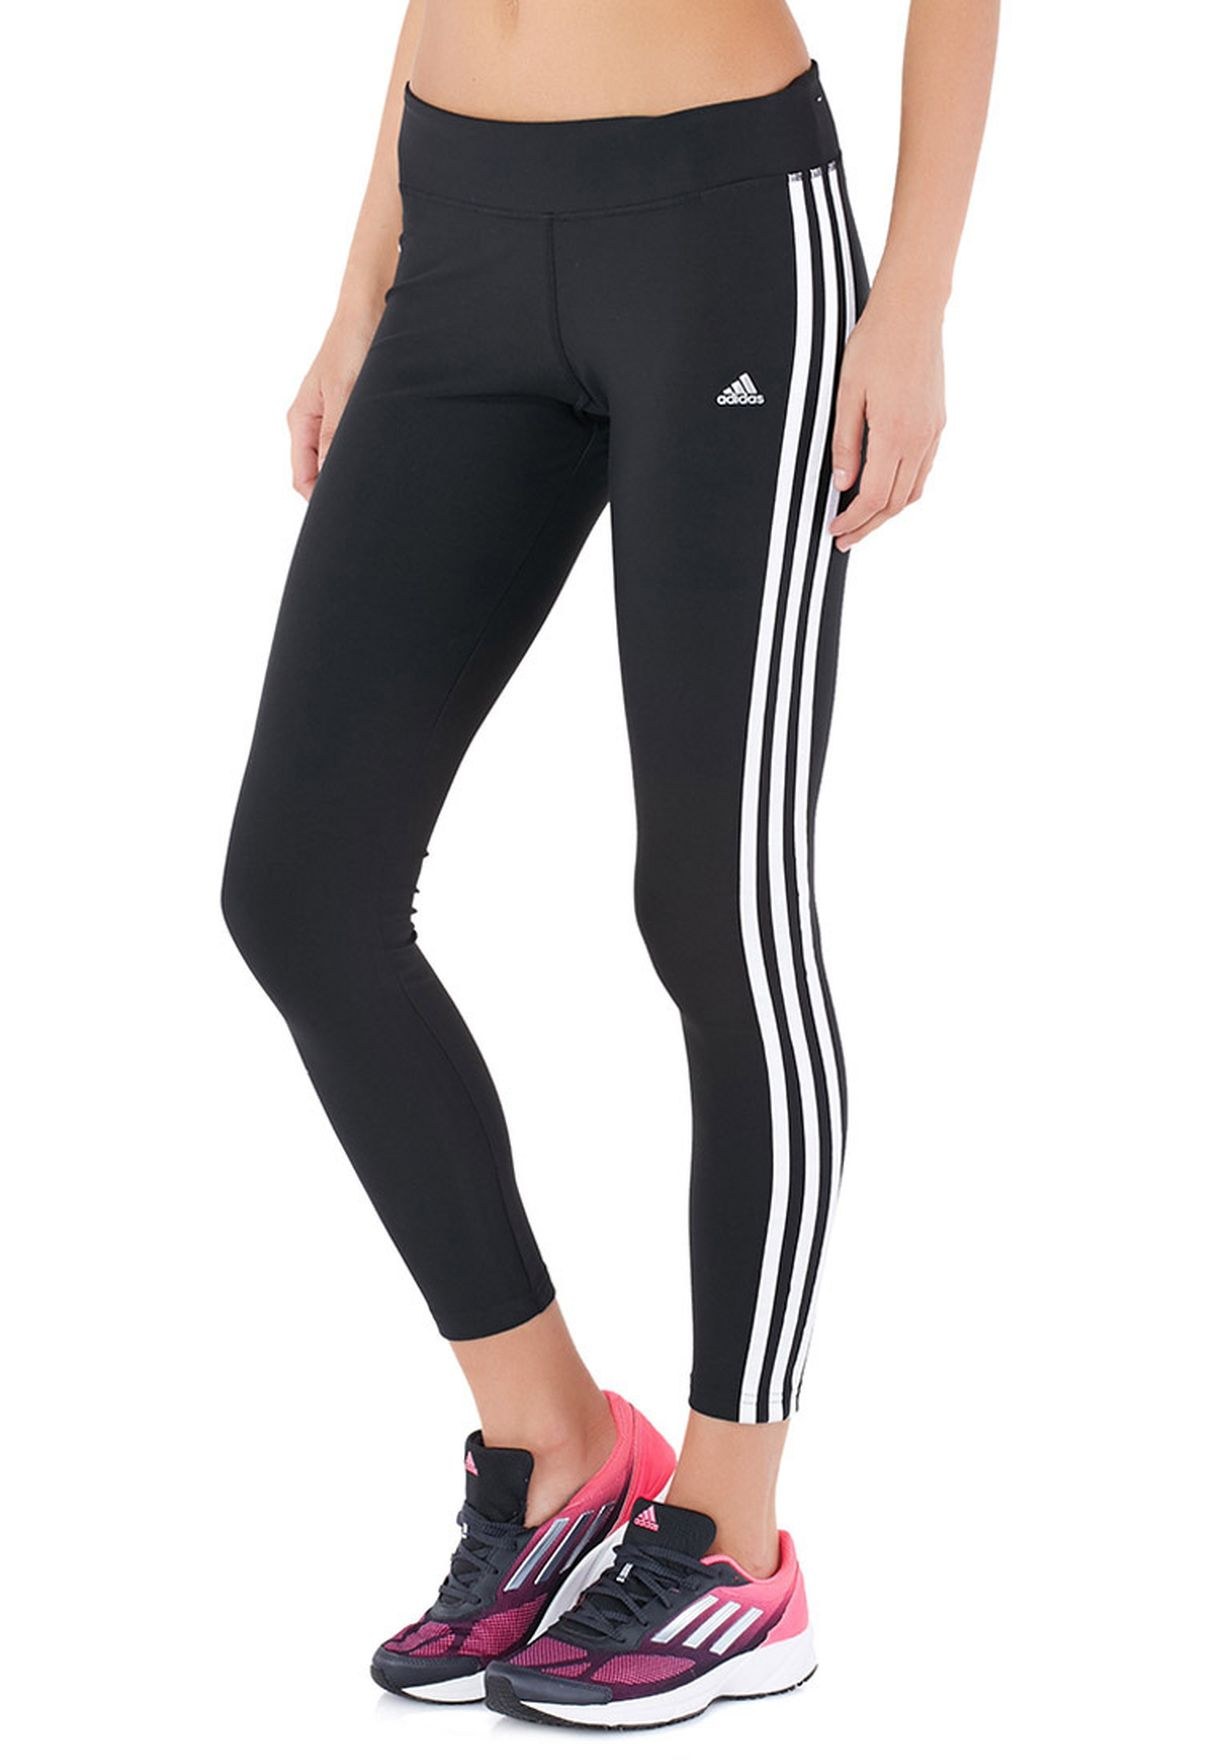 f9dff22ee6f5 Shop adidas black Ultimate Fit 3 Stripes Tights D89633 for Women in ...